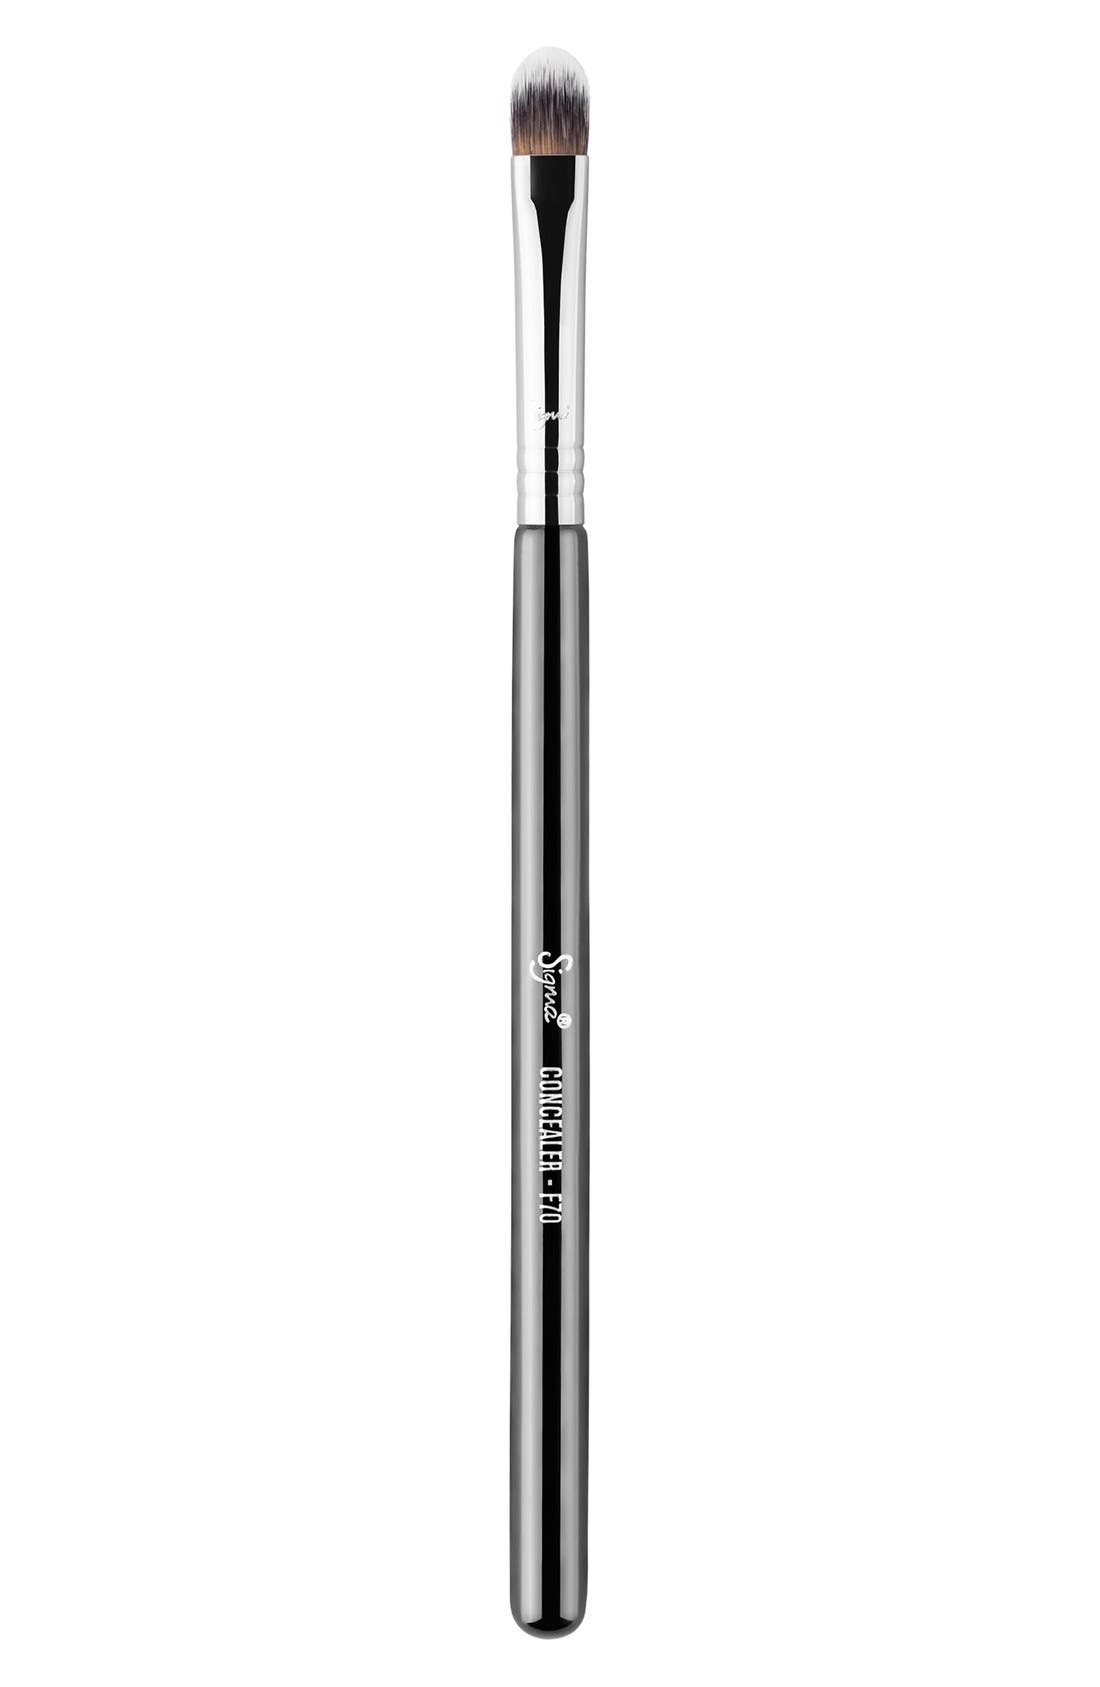 F70 Concealer Brush,                             Main thumbnail 1, color,                             NO COLOR